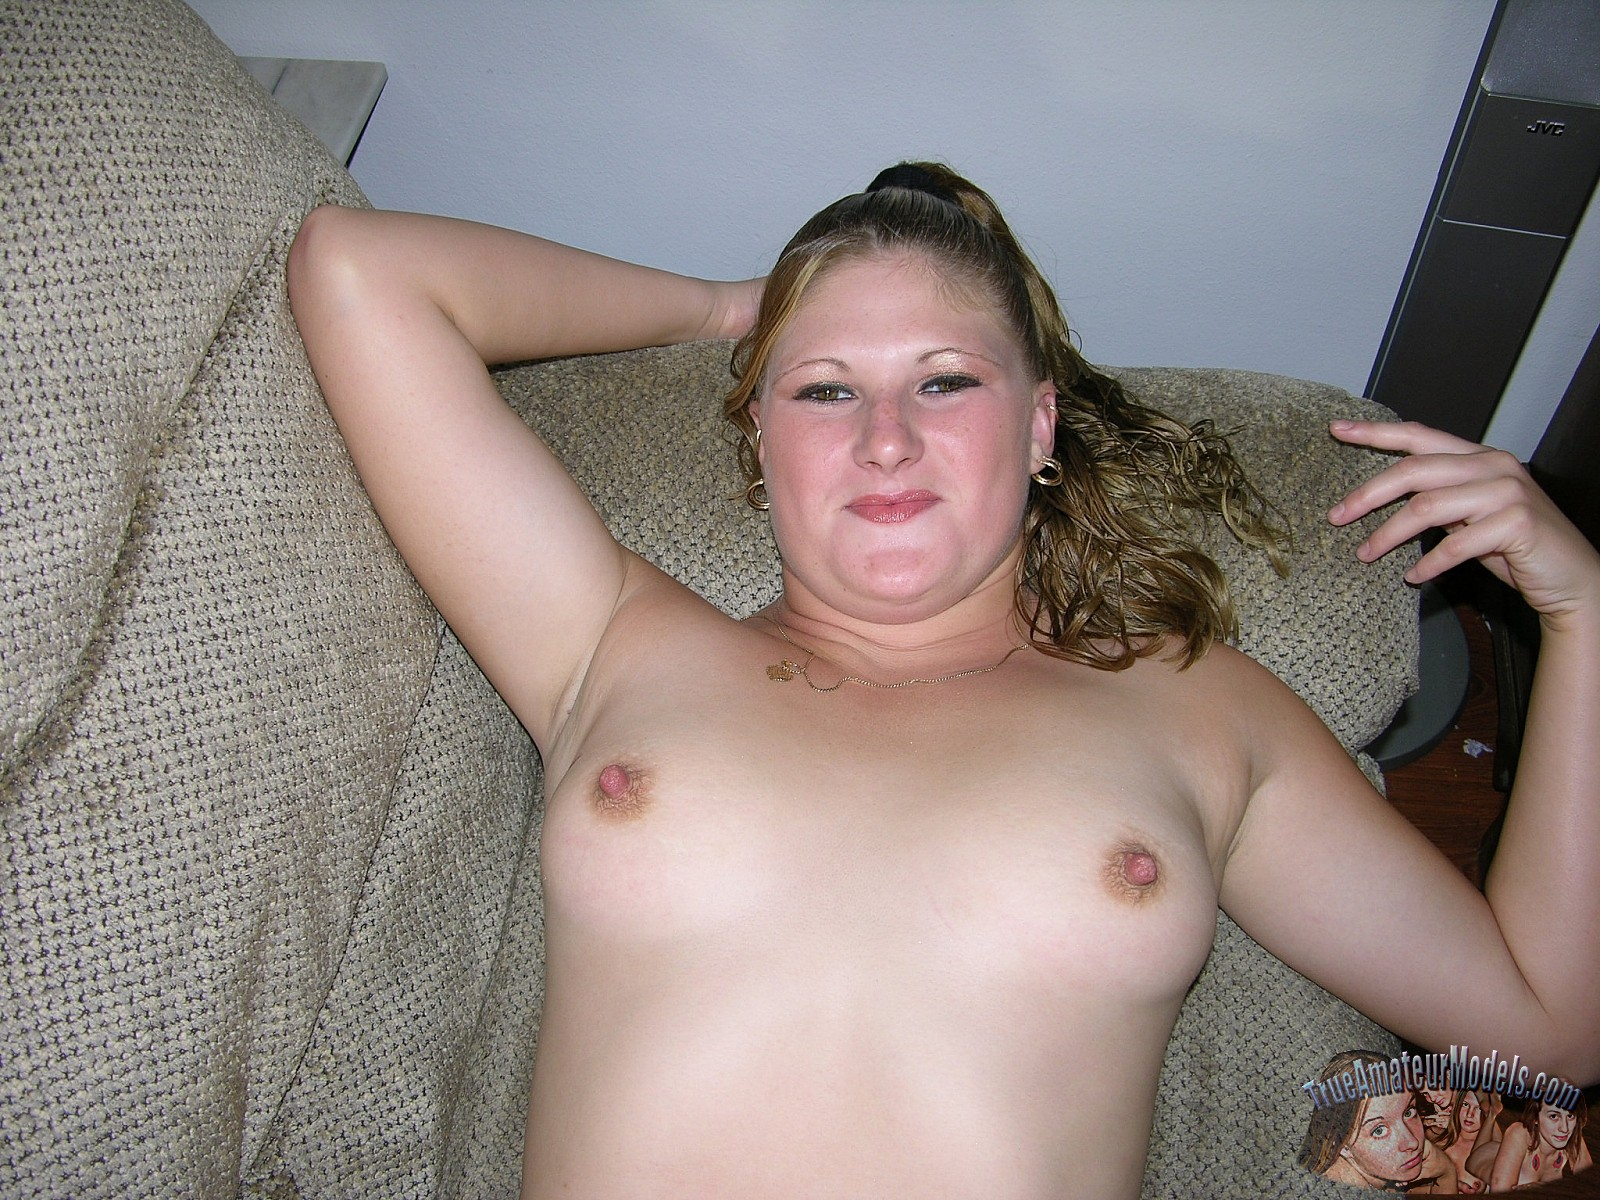 Trailer trash redneck nude hillbilly women